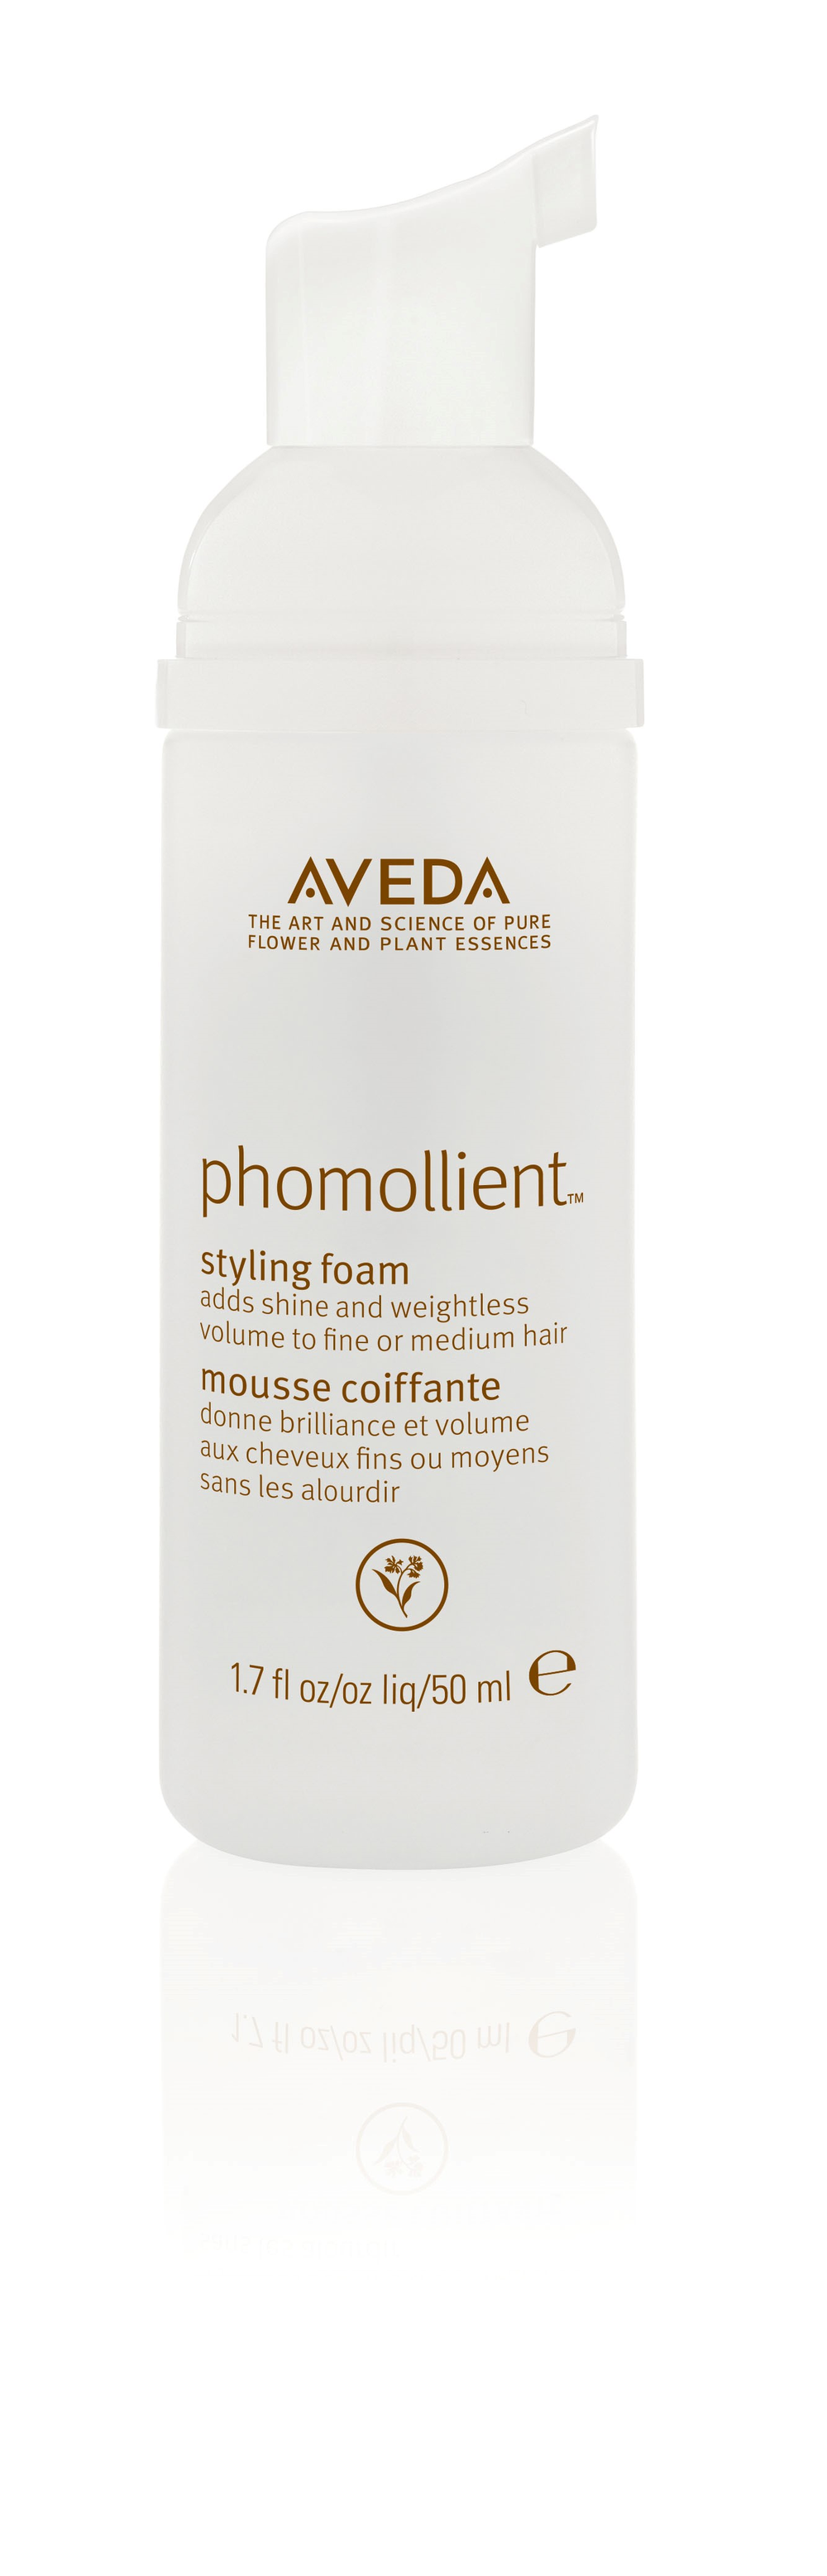 """<p>""""Aveda Phomolient is awesome for fine hair and gives maximum hold and volume! Not to mention, it smells like the beach.""""</p> <p>-@<a href=""""https://www.instagram.com/lockworxtheavedasalon/""""><strong>lockworxtheavedasalon</strong></a></p>"""